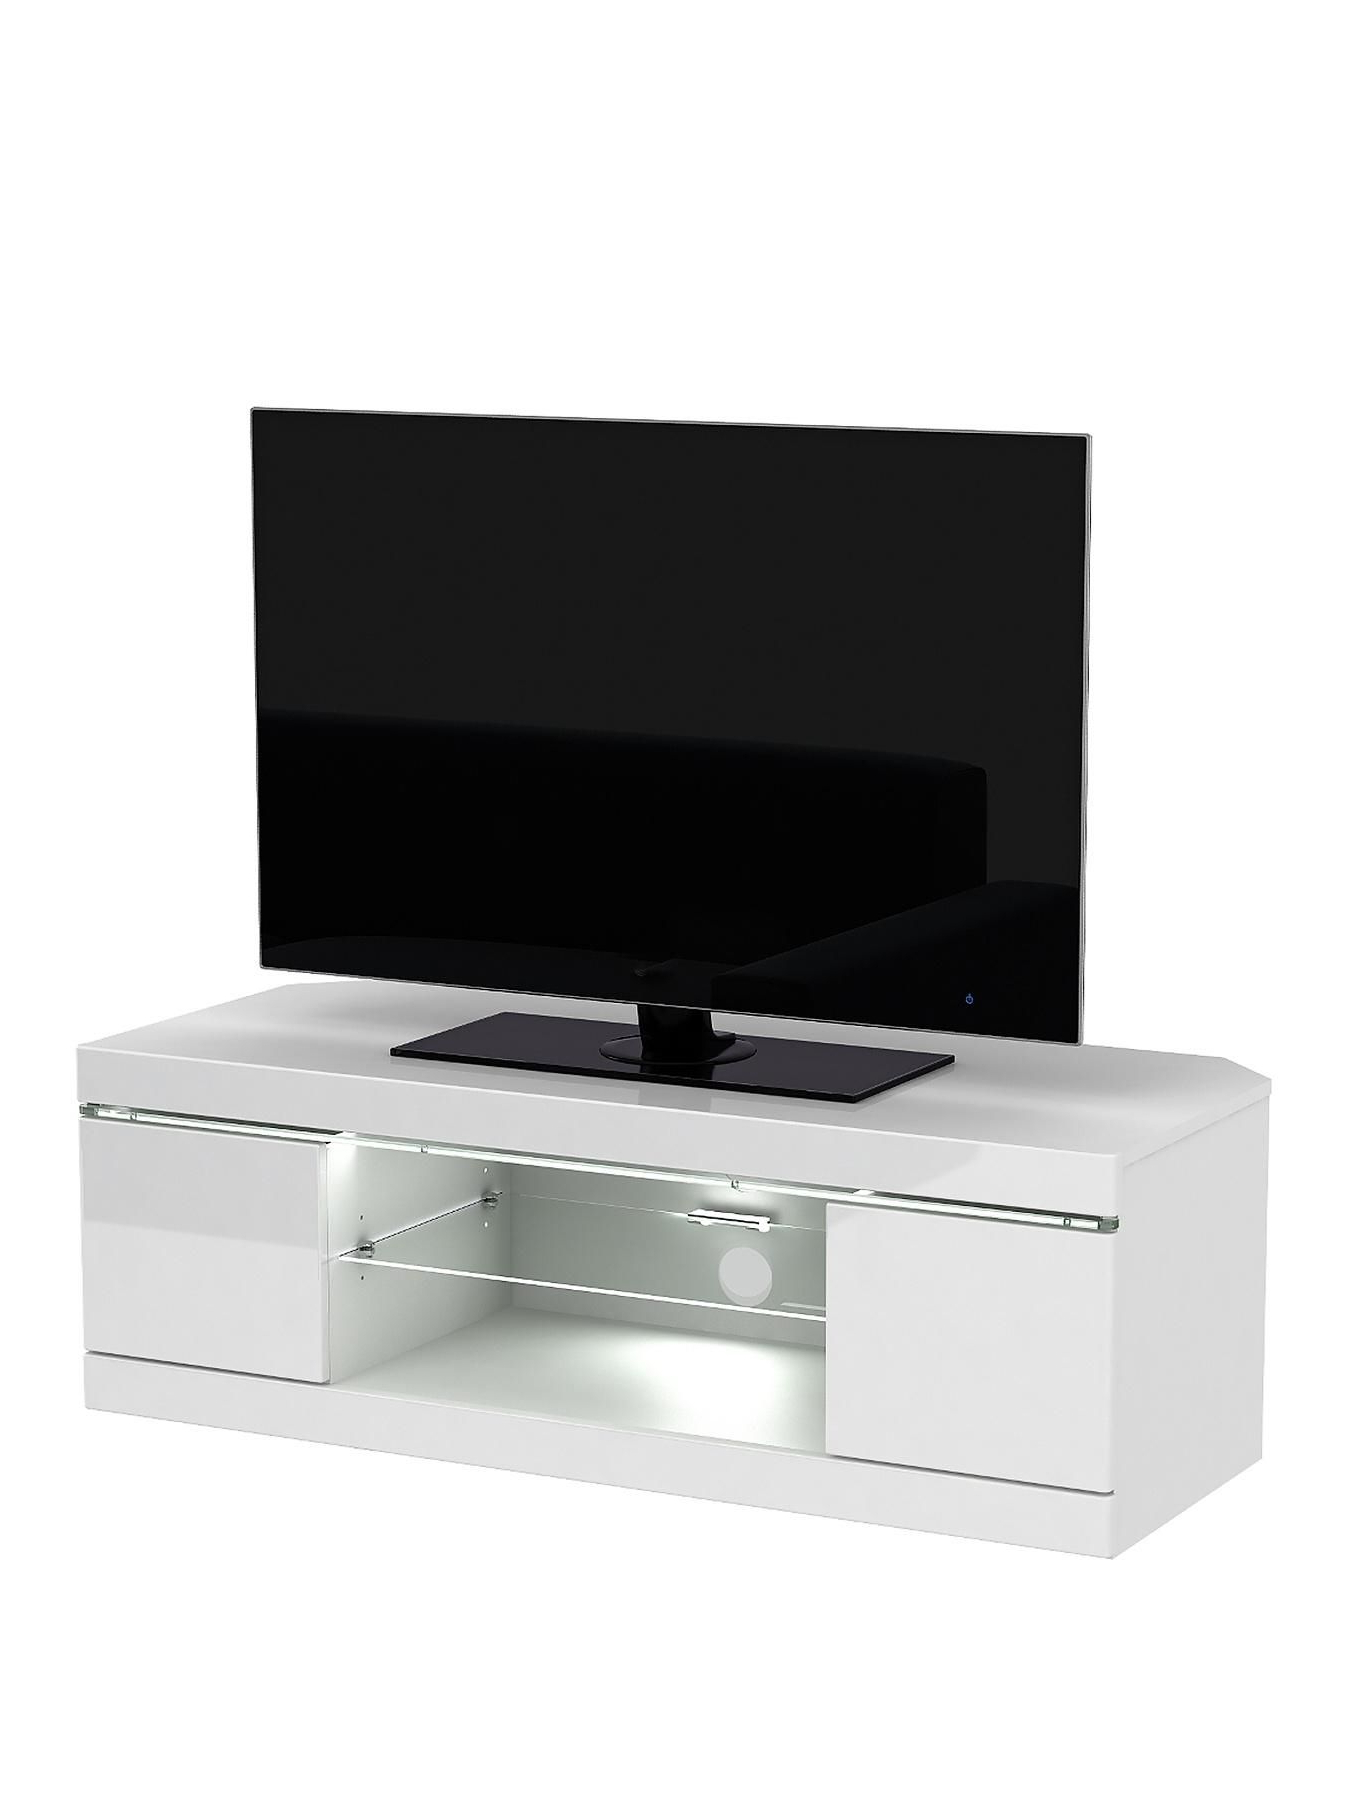 Womens, Mens And Kids Fashion, Furniture, Electricals & More Regarding Recent Corner Tv Unit White Gloss (View 9 of 20)